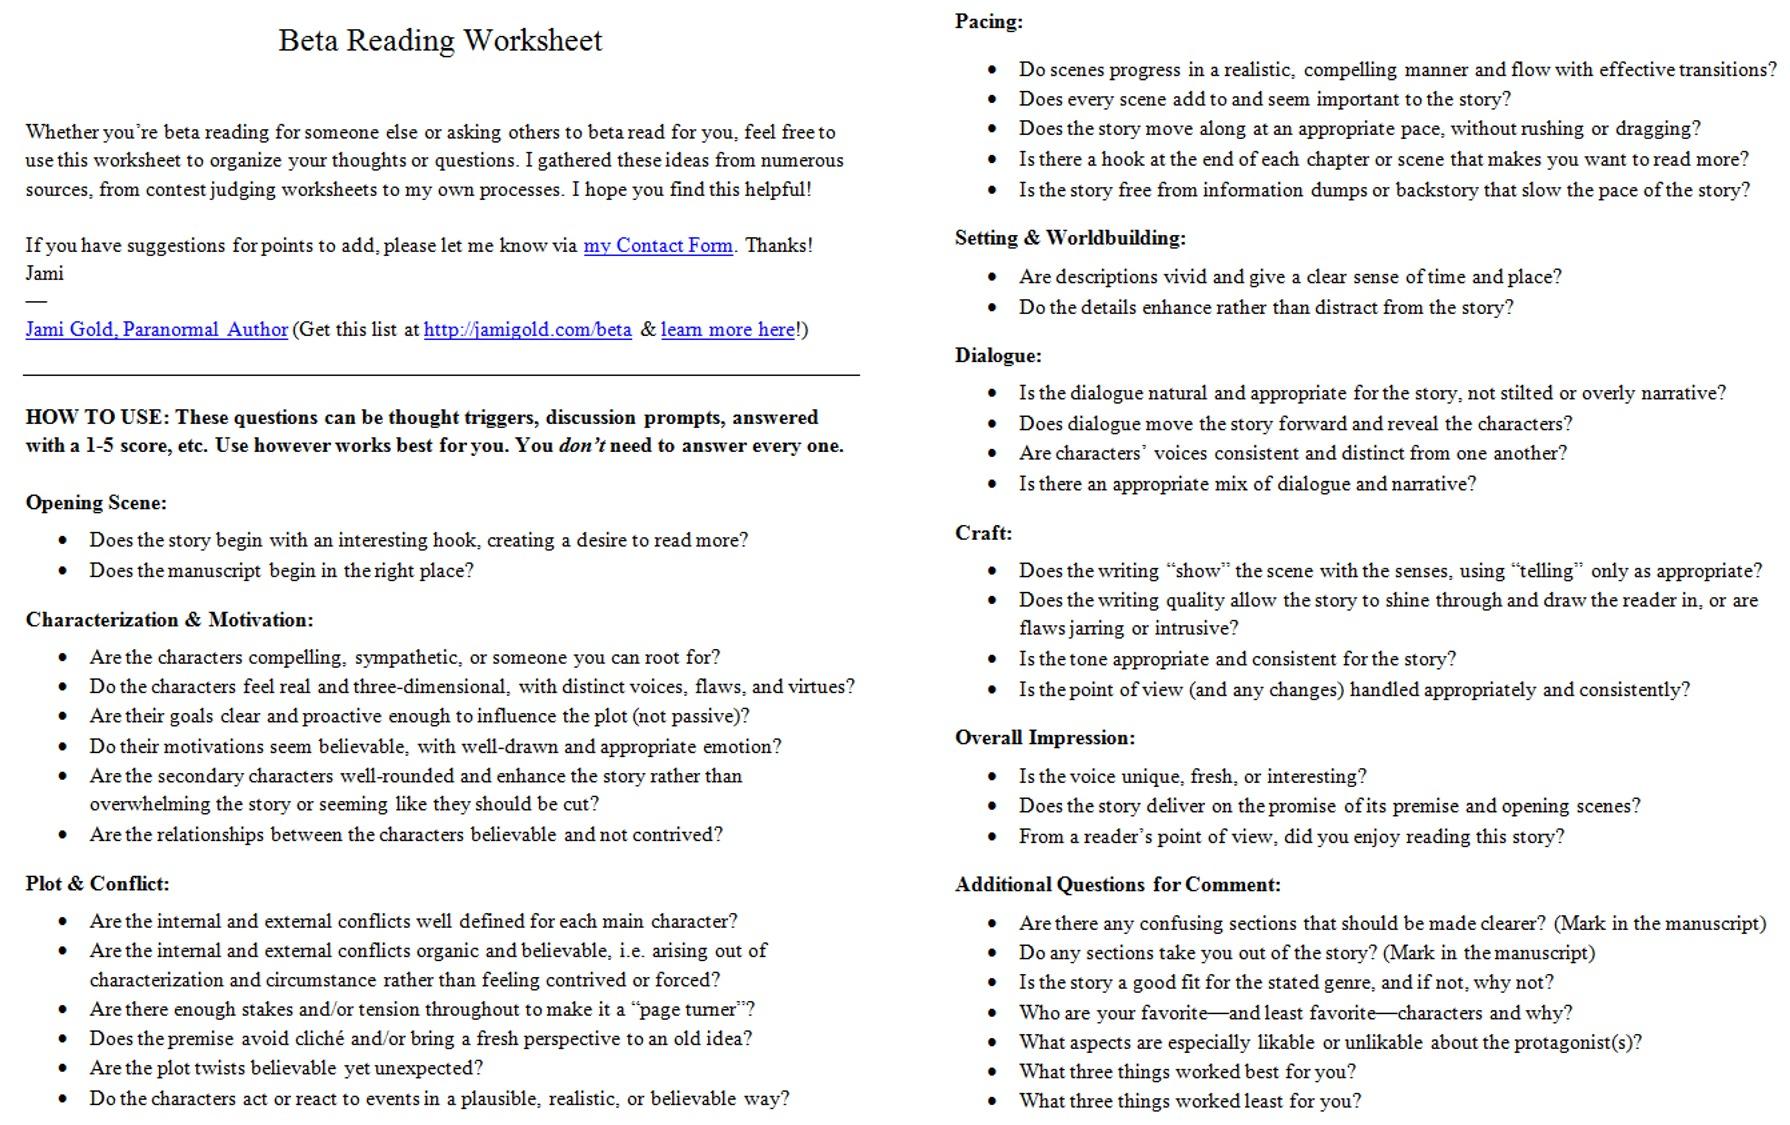 Aldiablosus  Outstanding Worksheets For Writers  Jami Gold Paranormal Author With Exquisite Screen Shot Of The Twopage Beta Reading Worksheet With Charming Addition And Subtraction Of Rational Expressions Worksheet Also Labor Burden Worksheet In Addition Create A Vocabulary Worksheet And Context Clue Worksheets Th Grade As Well As Sentence Construction Worksheets Additionally Ordering Decimals On A Number Line Worksheet From Jamigoldcom With Aldiablosus  Exquisite Worksheets For Writers  Jami Gold Paranormal Author With Charming Screen Shot Of The Twopage Beta Reading Worksheet And Outstanding Addition And Subtraction Of Rational Expressions Worksheet Also Labor Burden Worksheet In Addition Create A Vocabulary Worksheet From Jamigoldcom